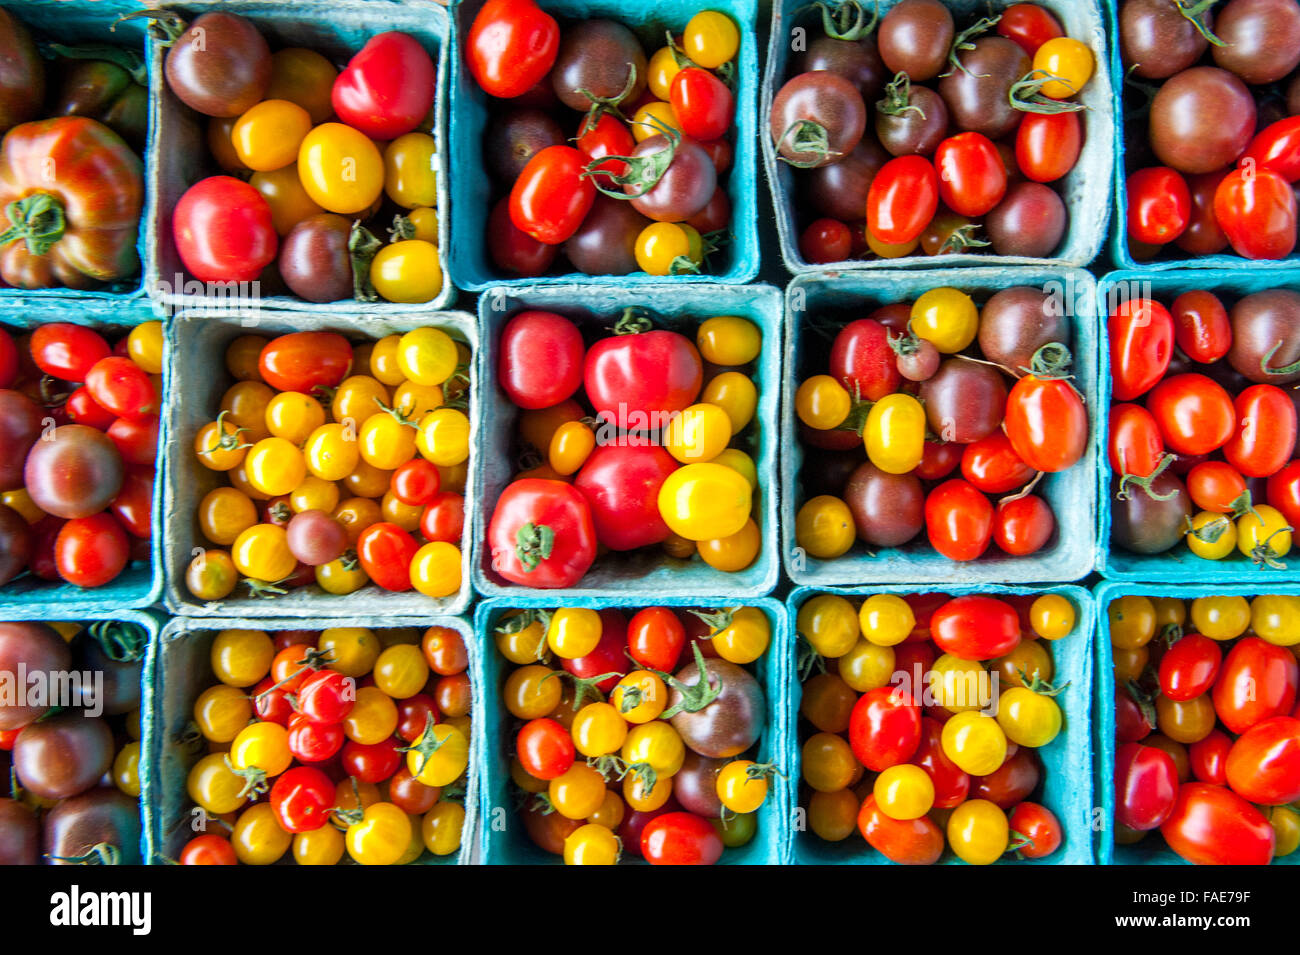 Containers of locally grown tomatoes - Stock Image